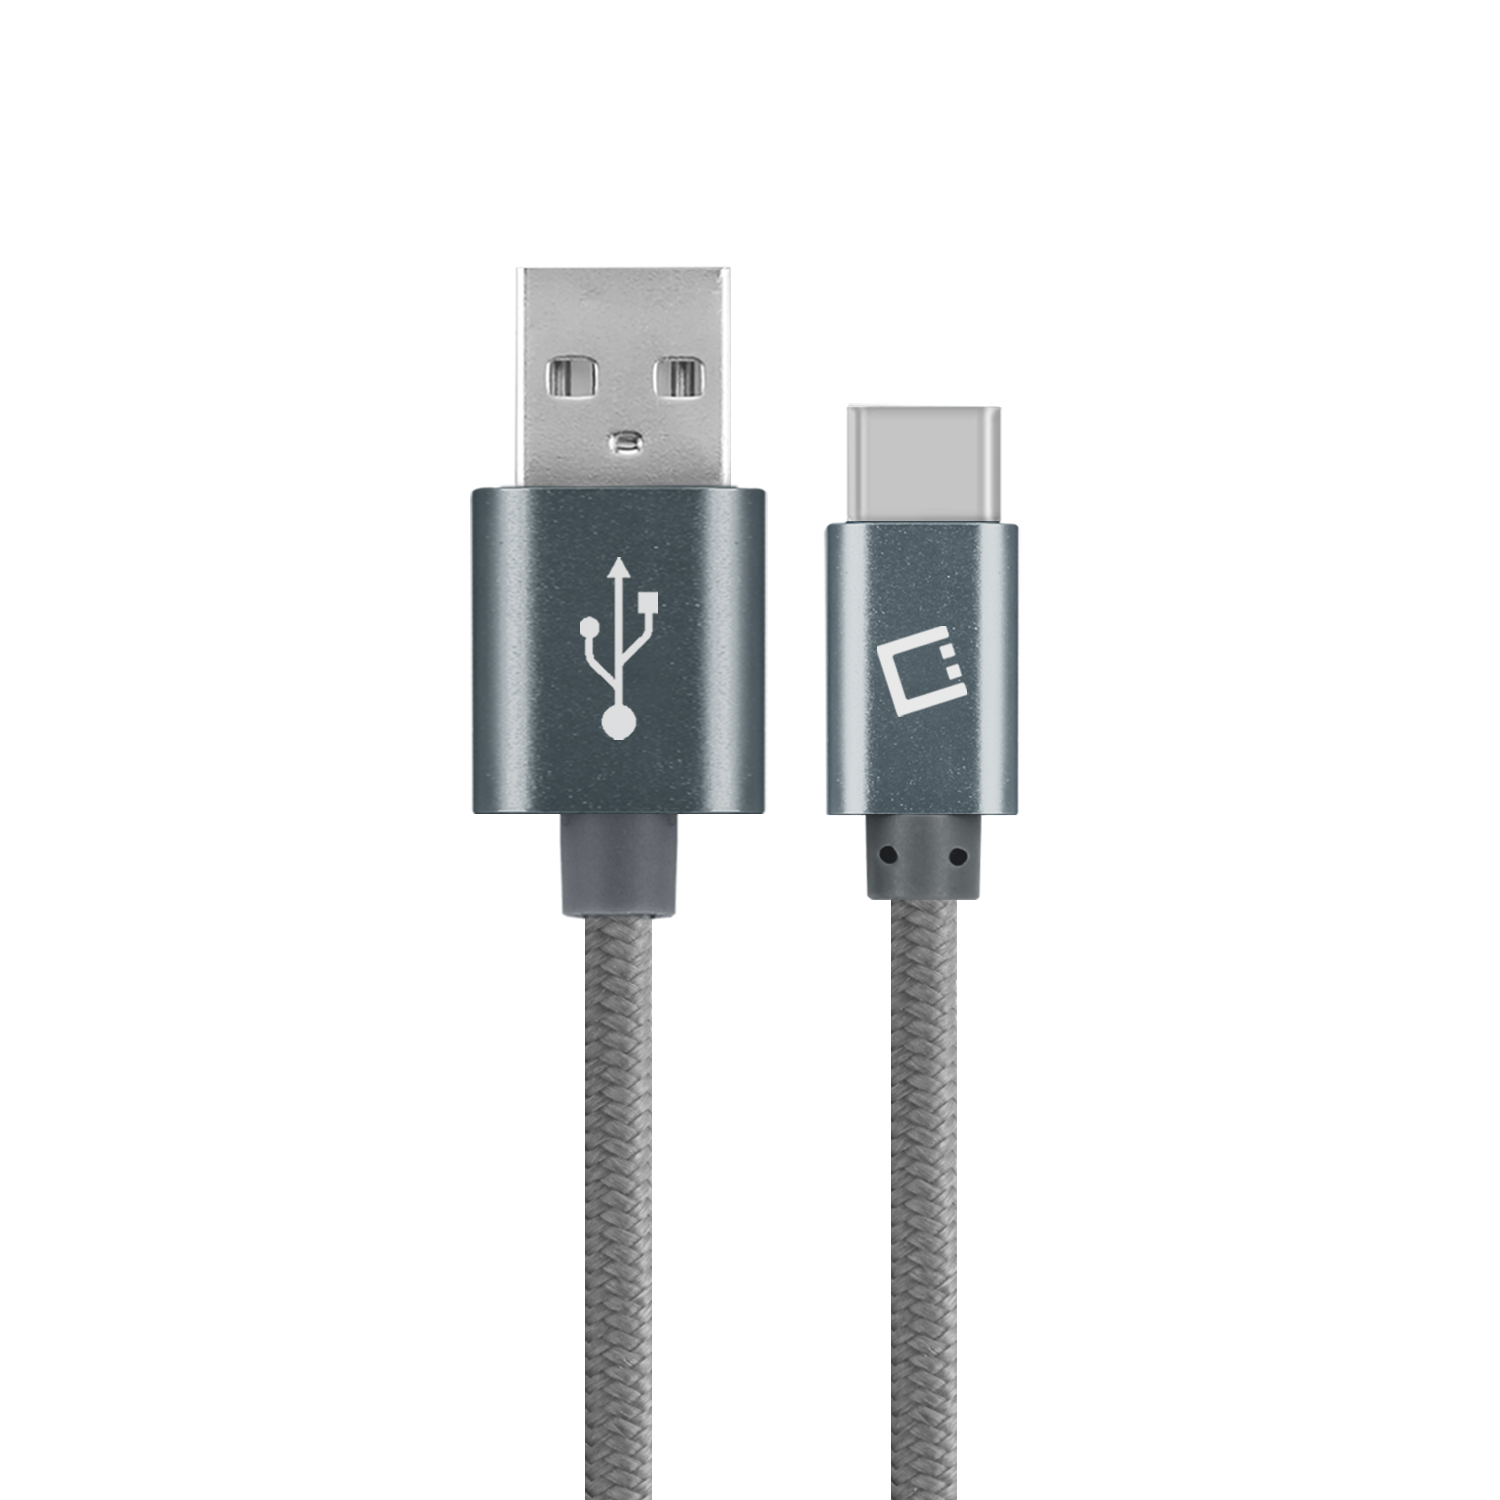 Samsung Galaxy S9 Plus USB Type-C To Type-A Braided Data Power Cable Grey 10ft Braided